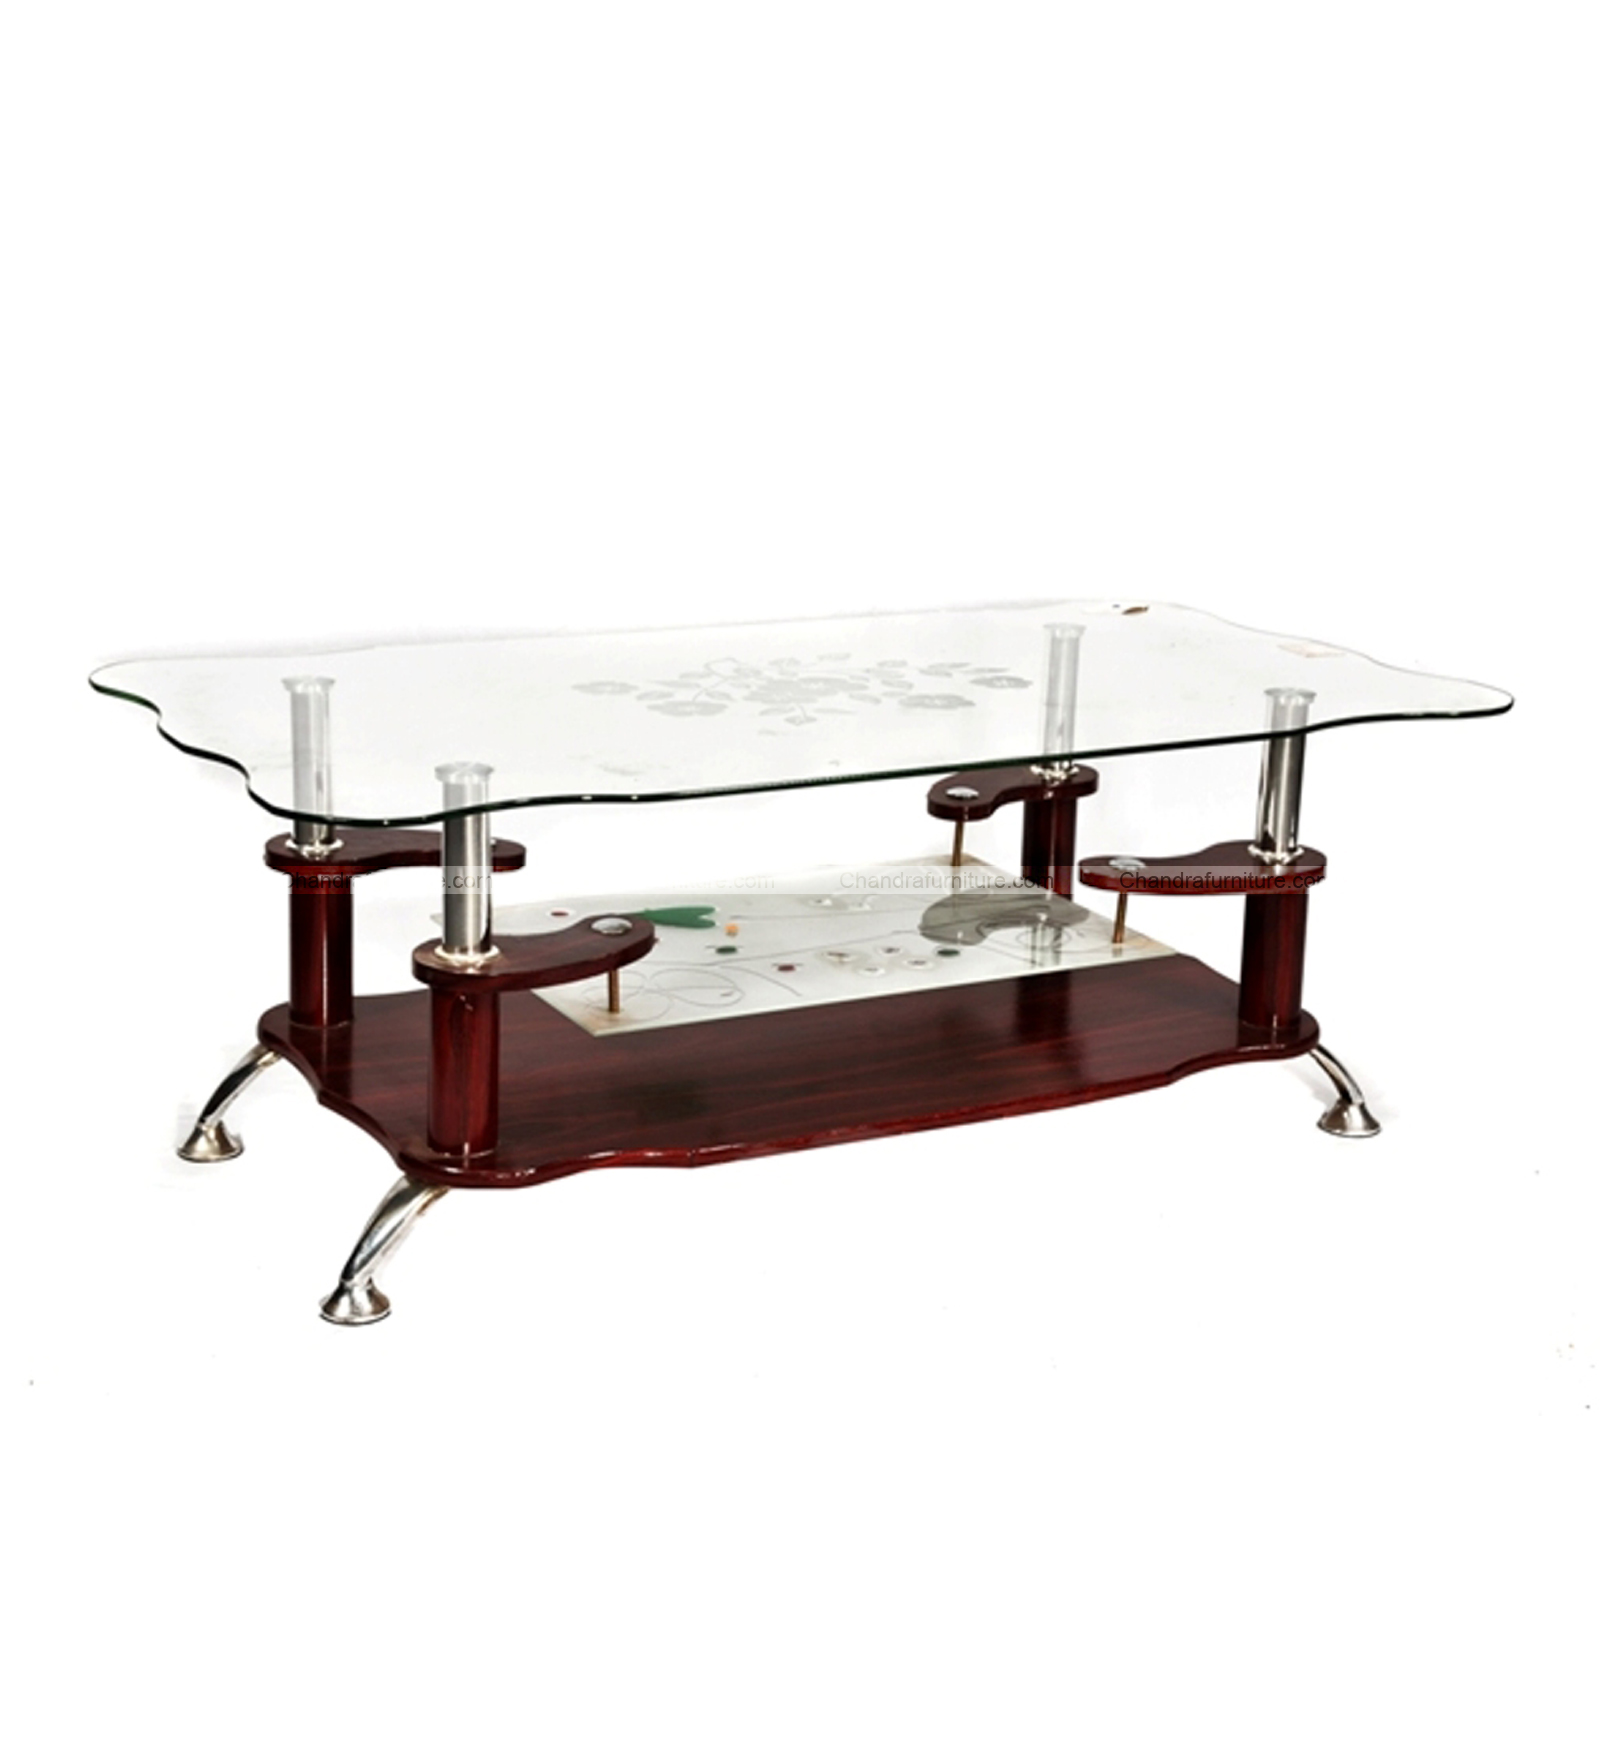 CHANDRA FURNITURE CENTER TABLE  D10